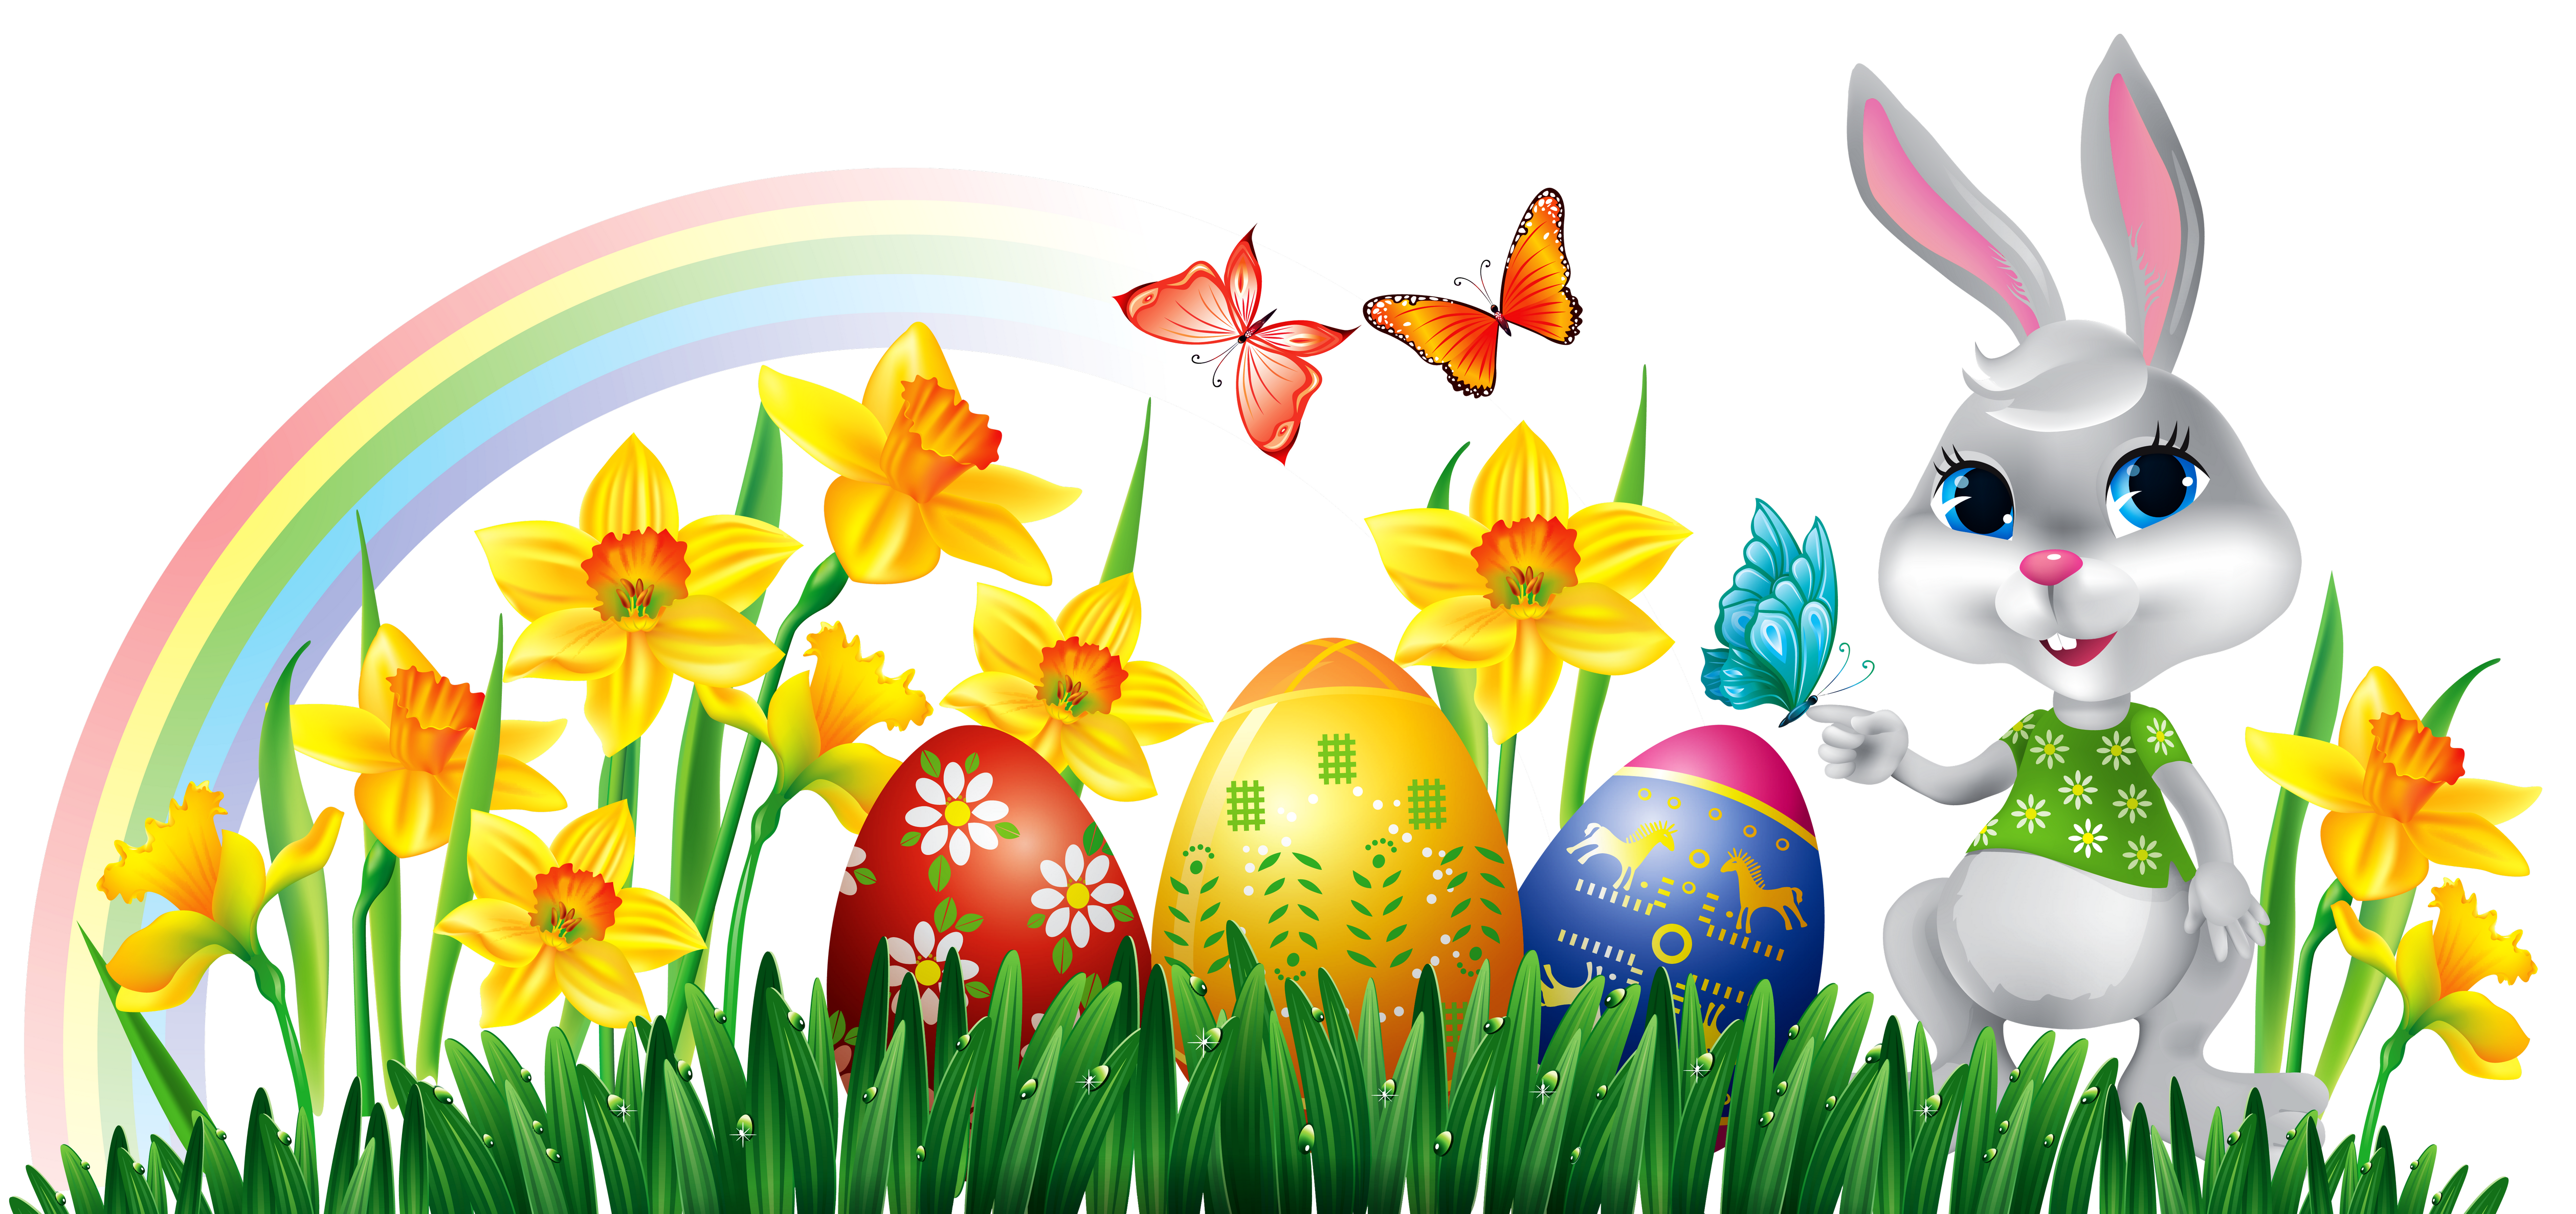 Happy Easter Clip Art Free - Cliparts.co Easter Clip Art Free Images